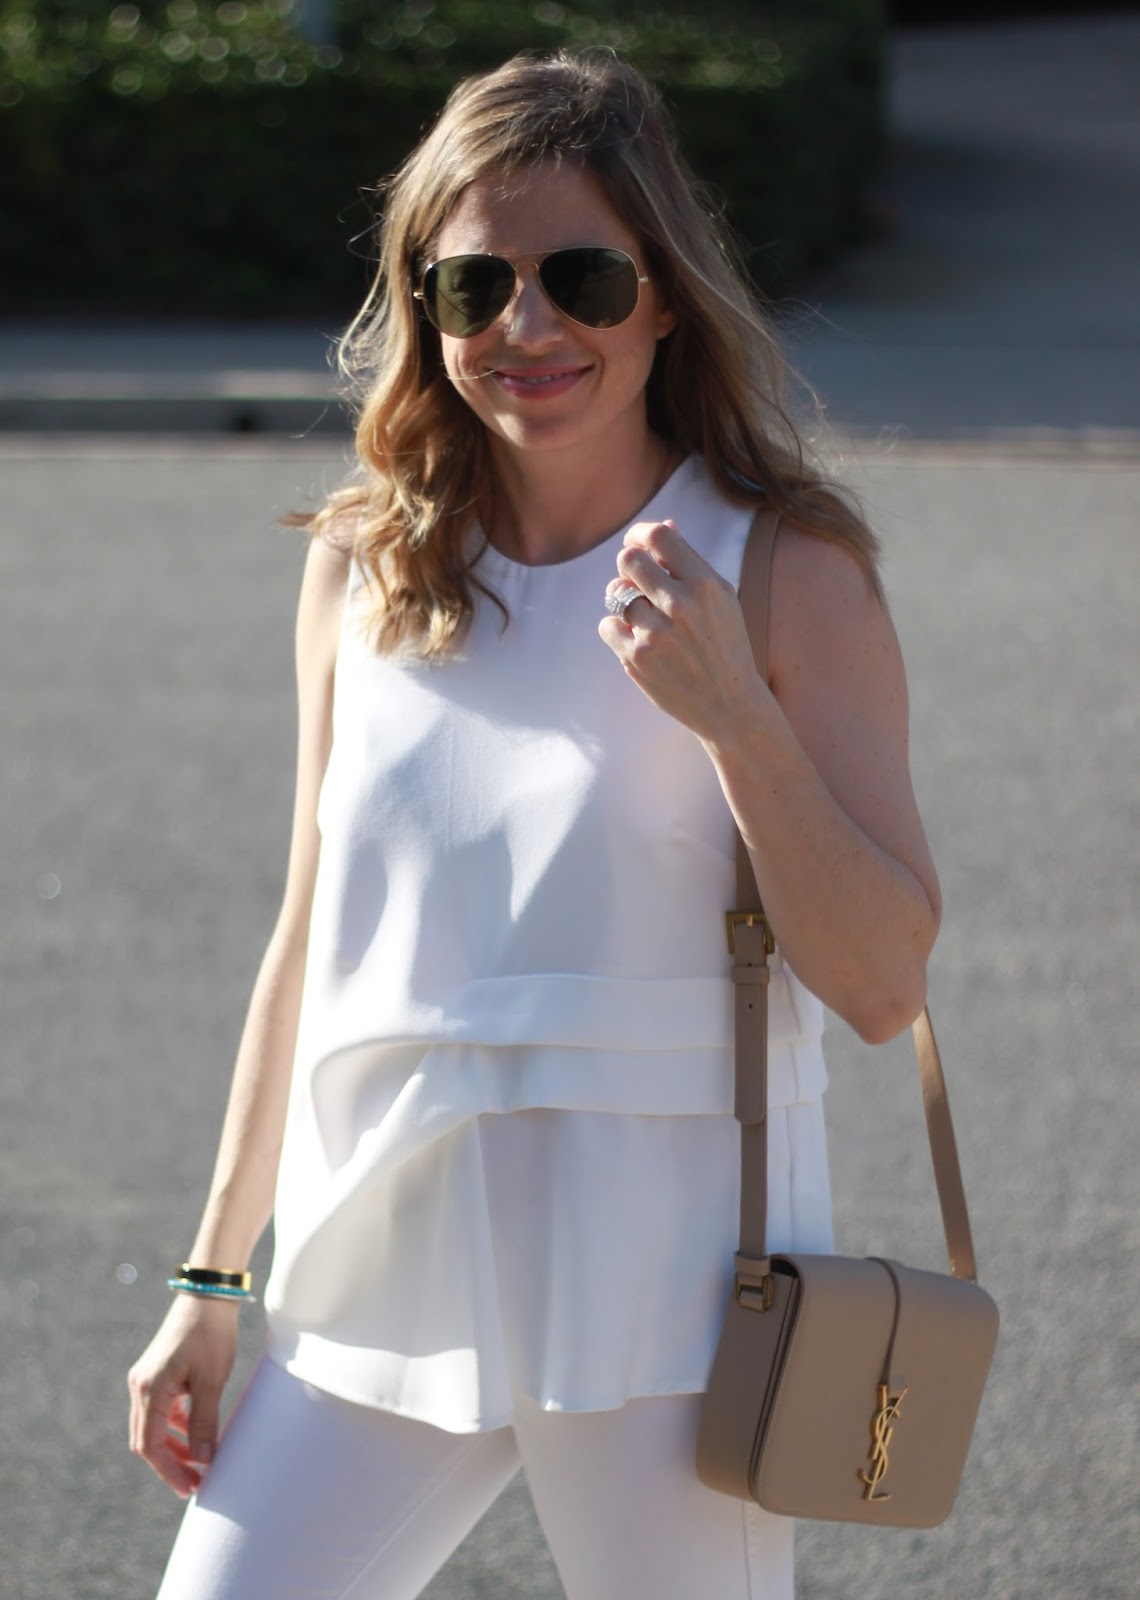 ray-bans  and white